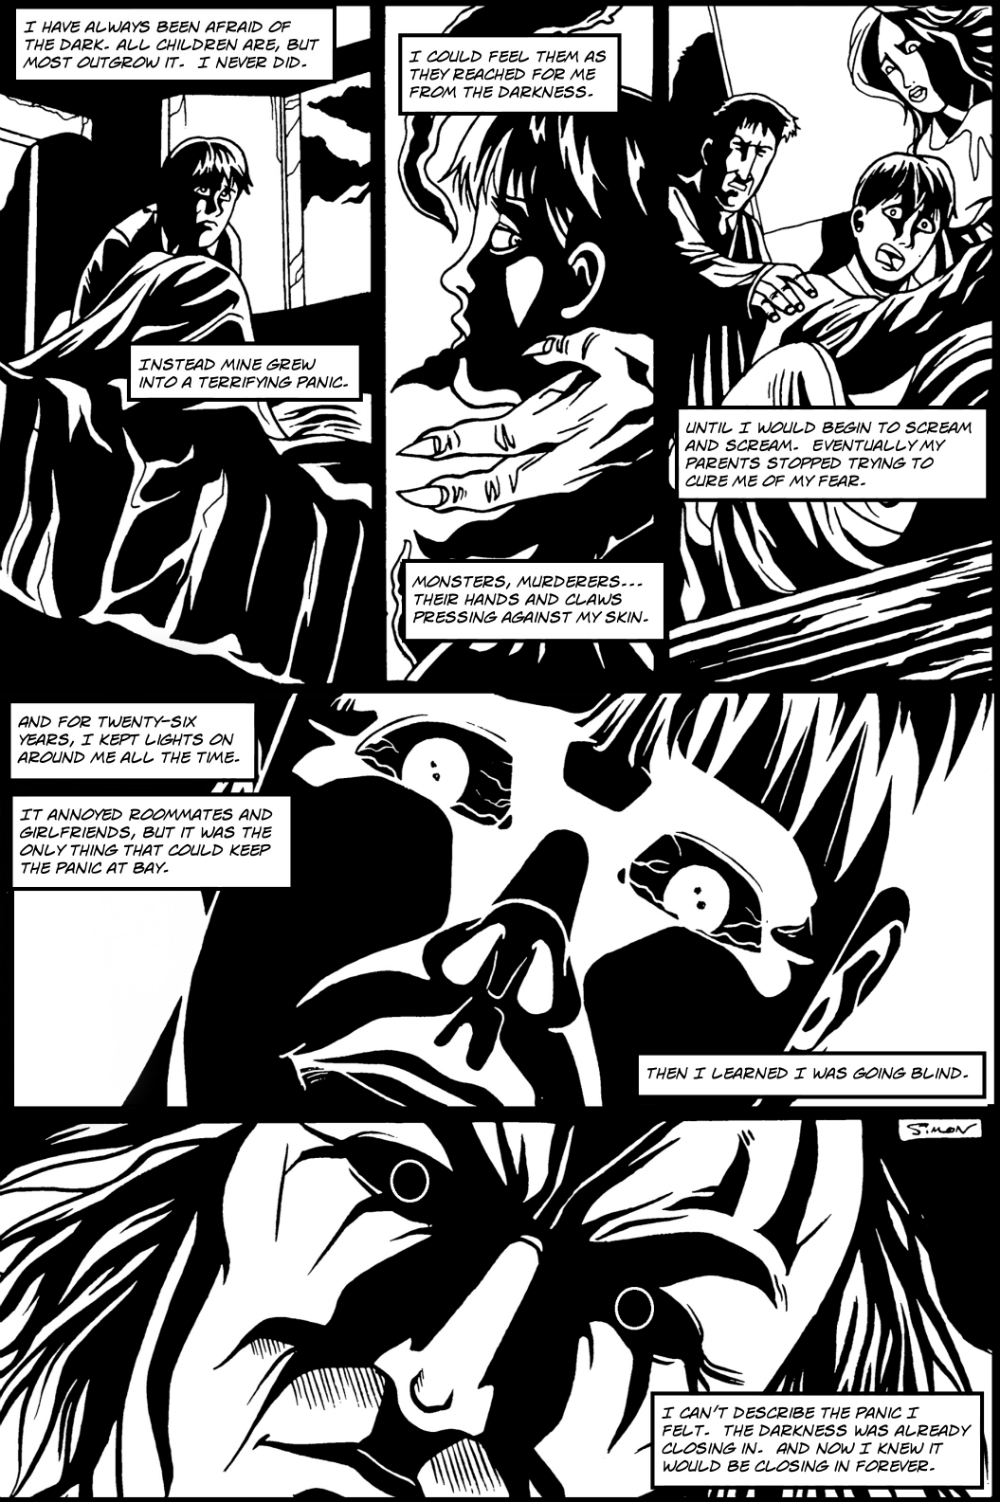 EYES page 2 - story 2 in The Book of Lies